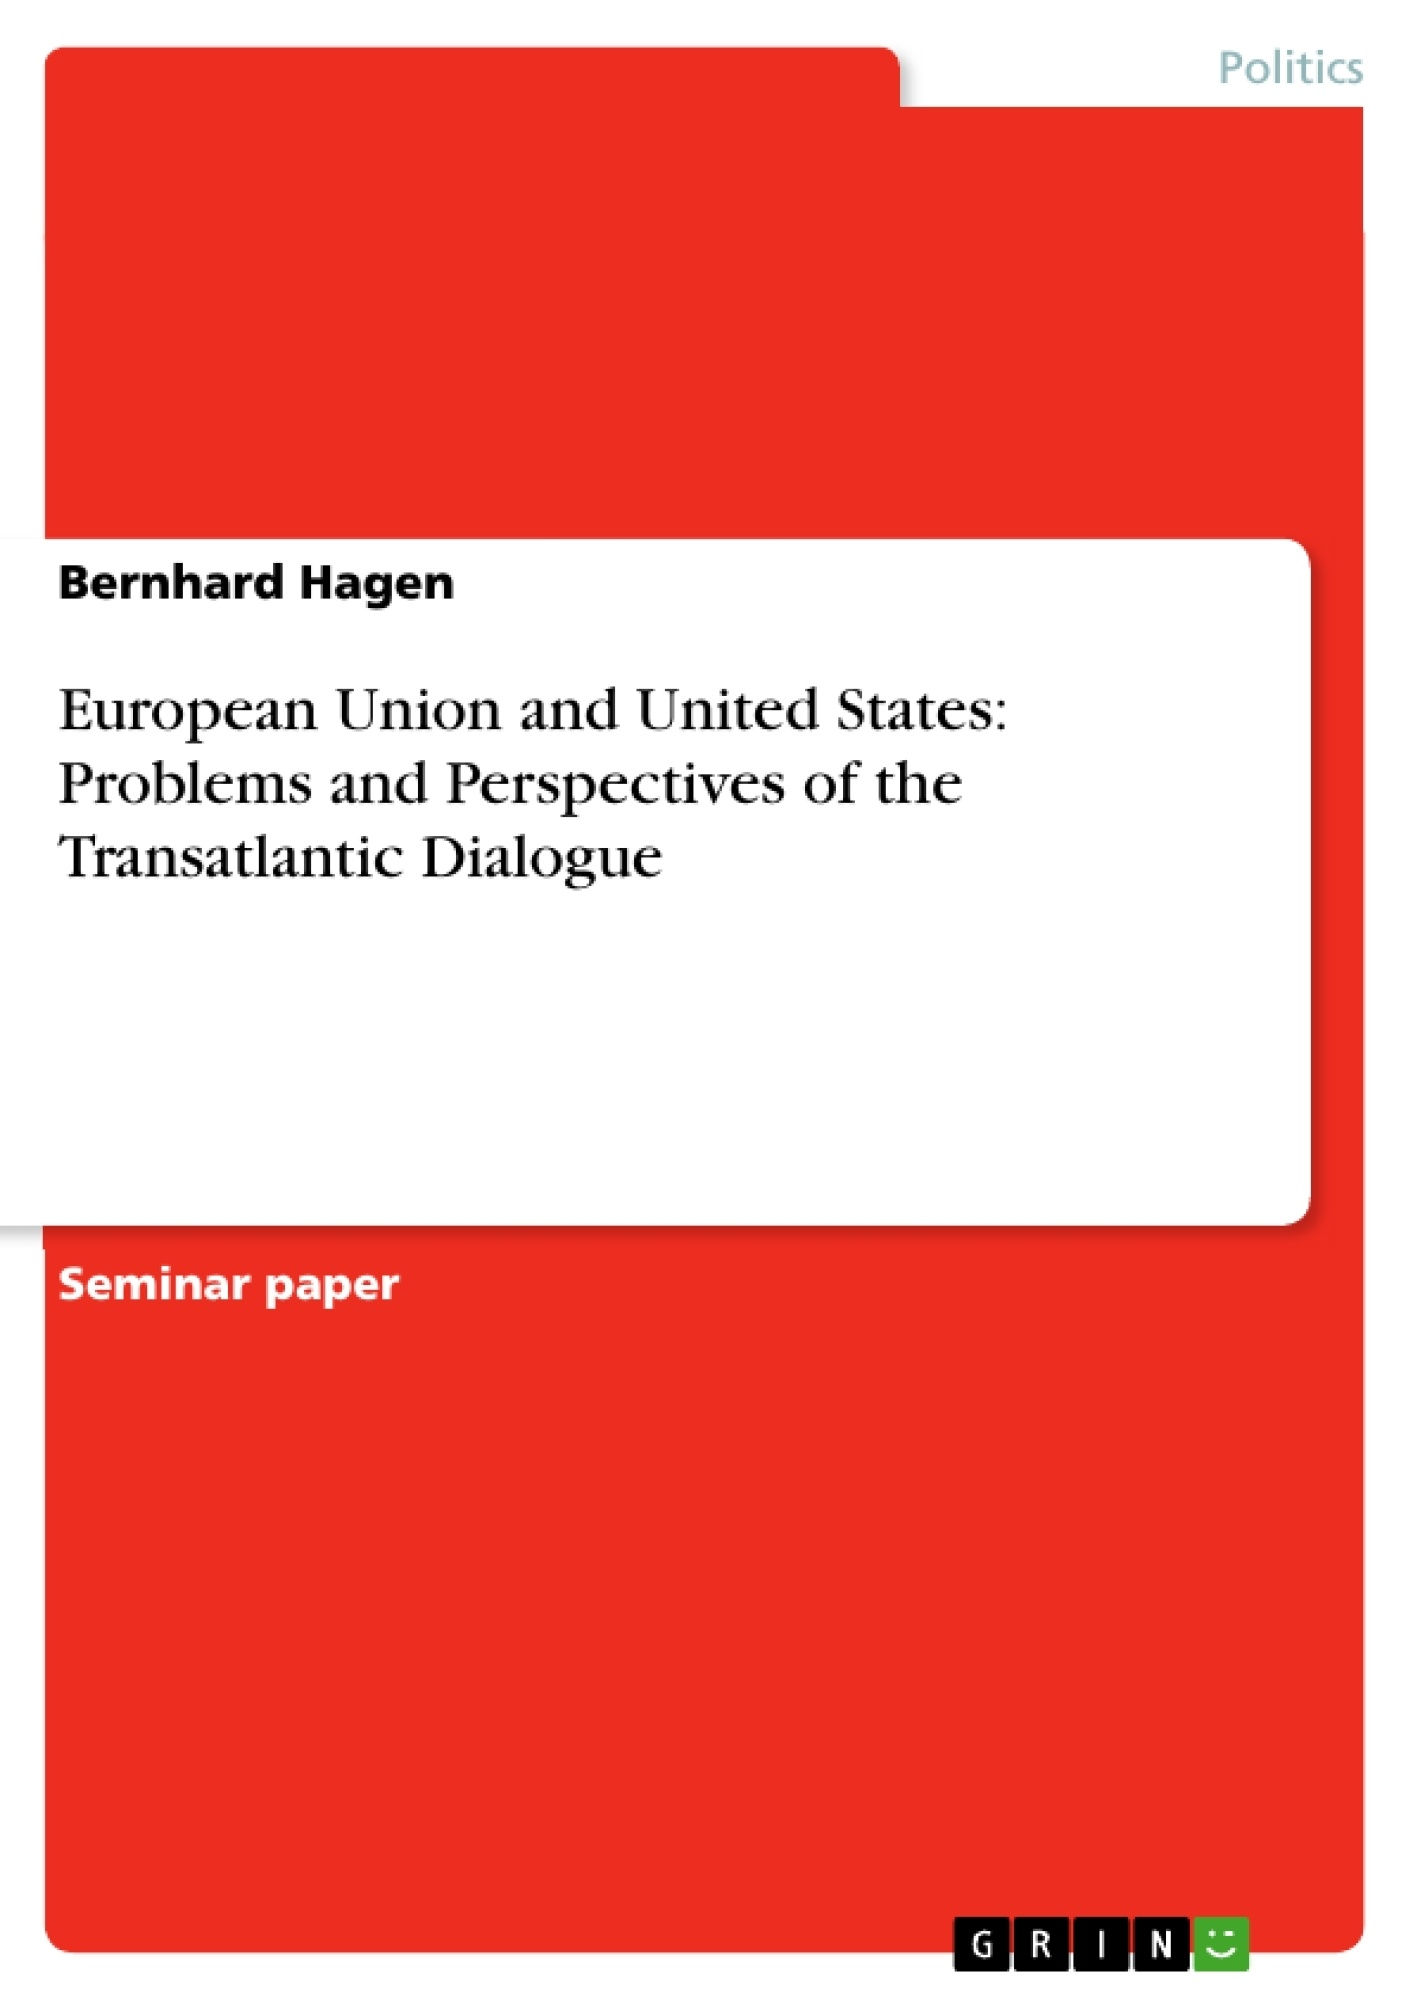 Title: European Union and United States: Problems and Perspectives of the Transatlantic Dialogue